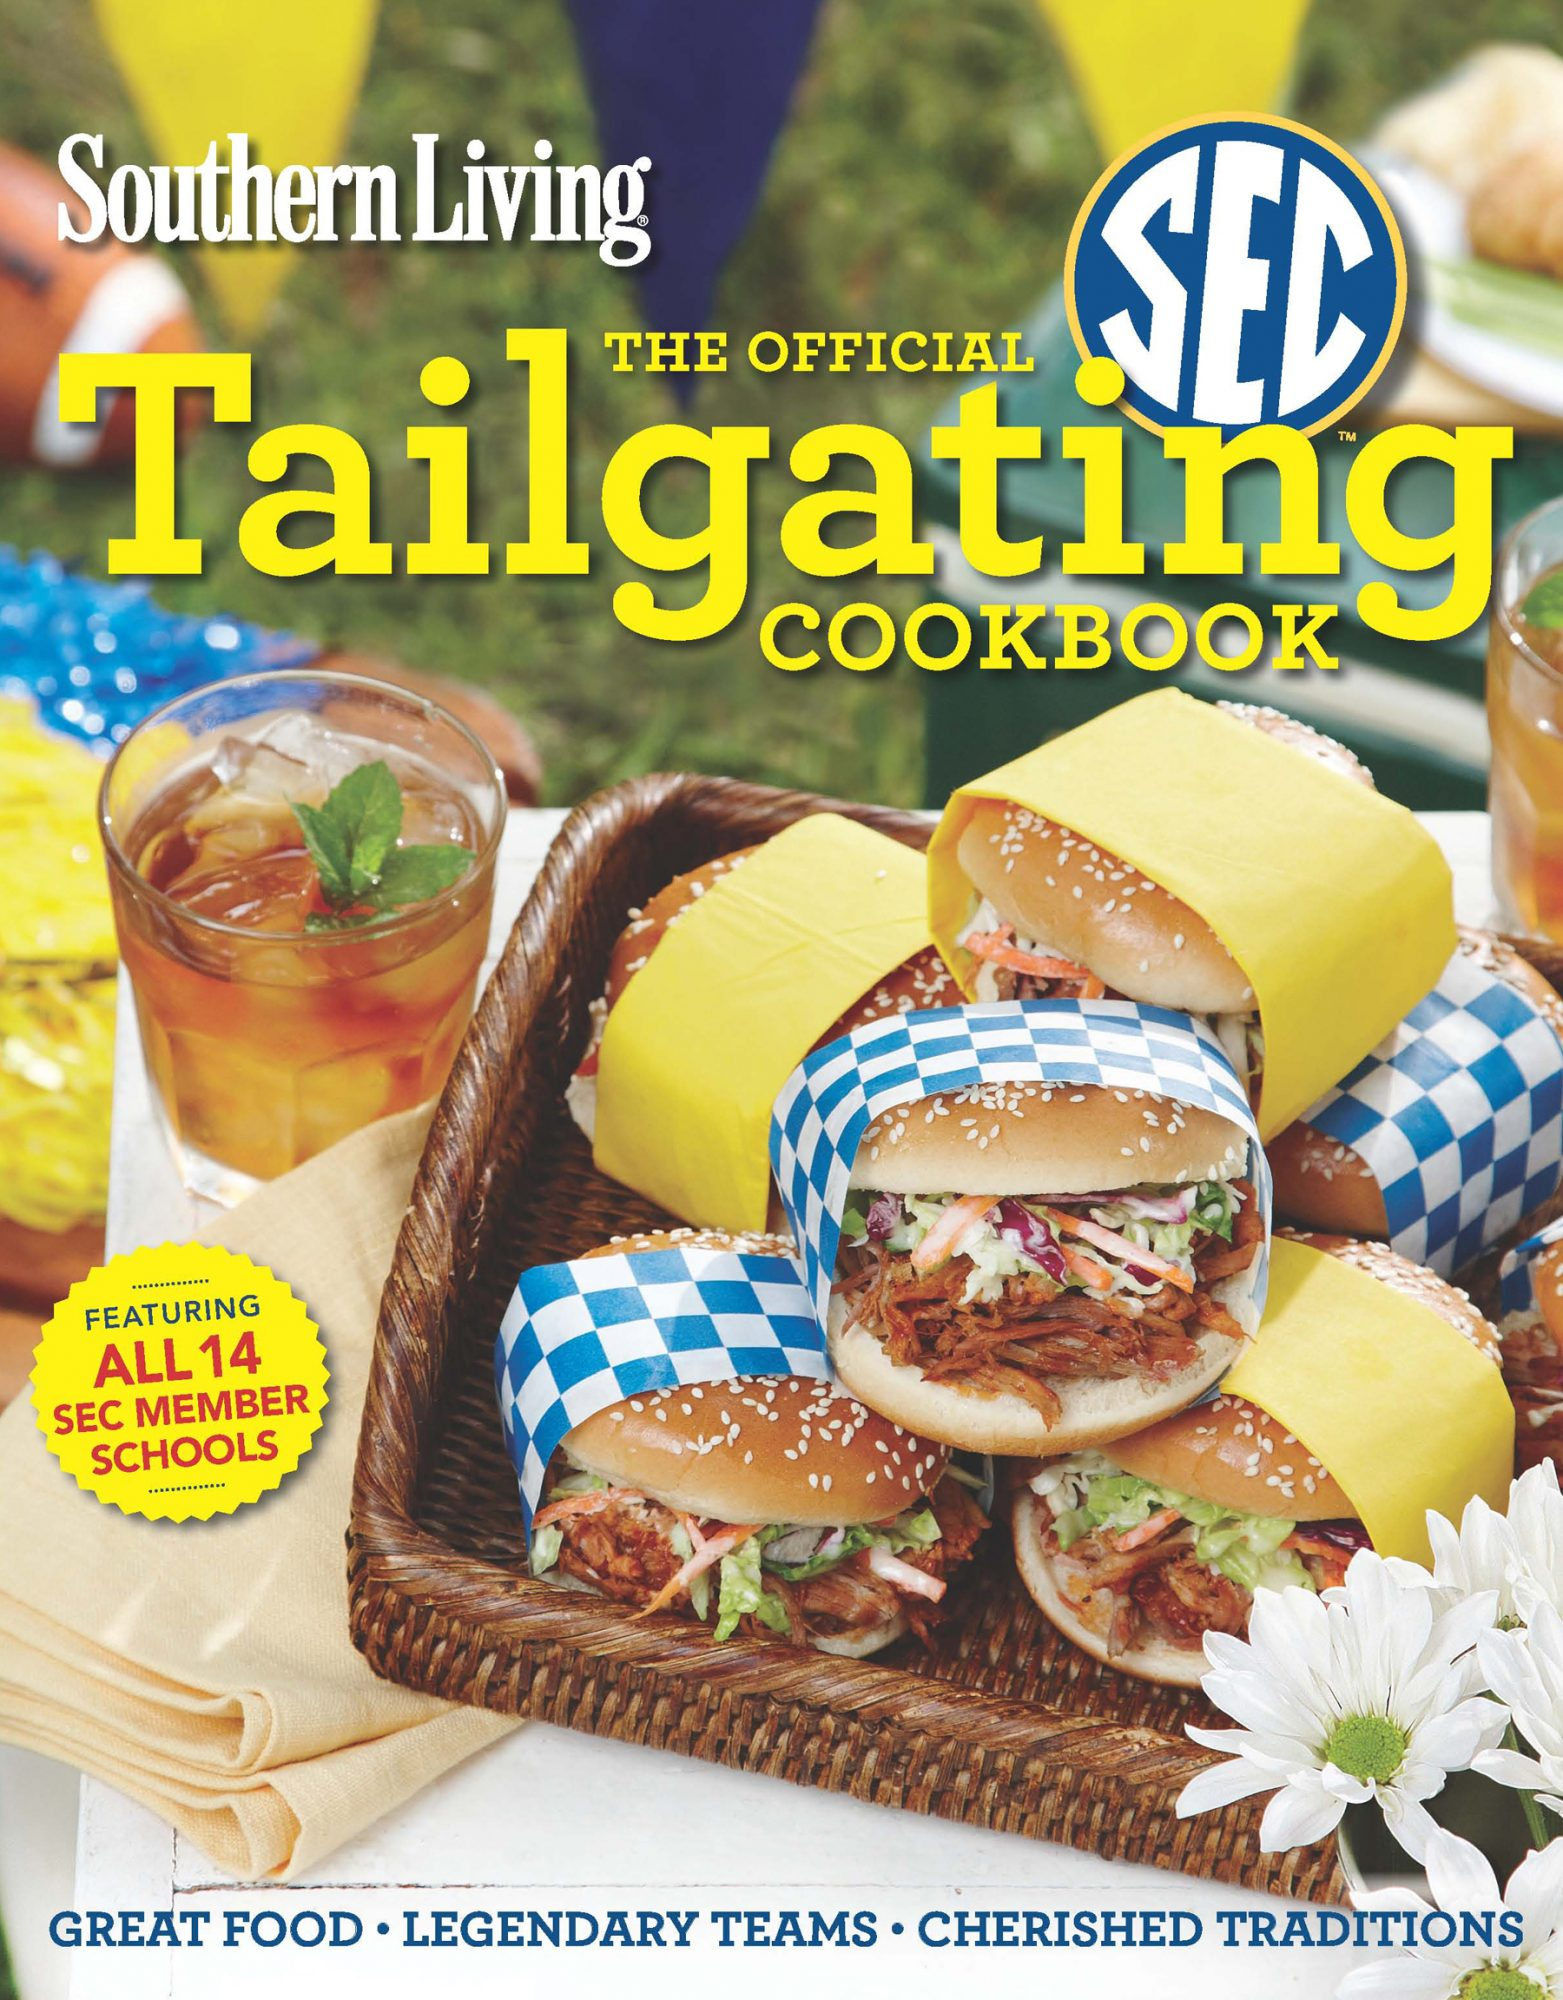 sl-the-official-sec-tailgating-cookbook-oh.jpg